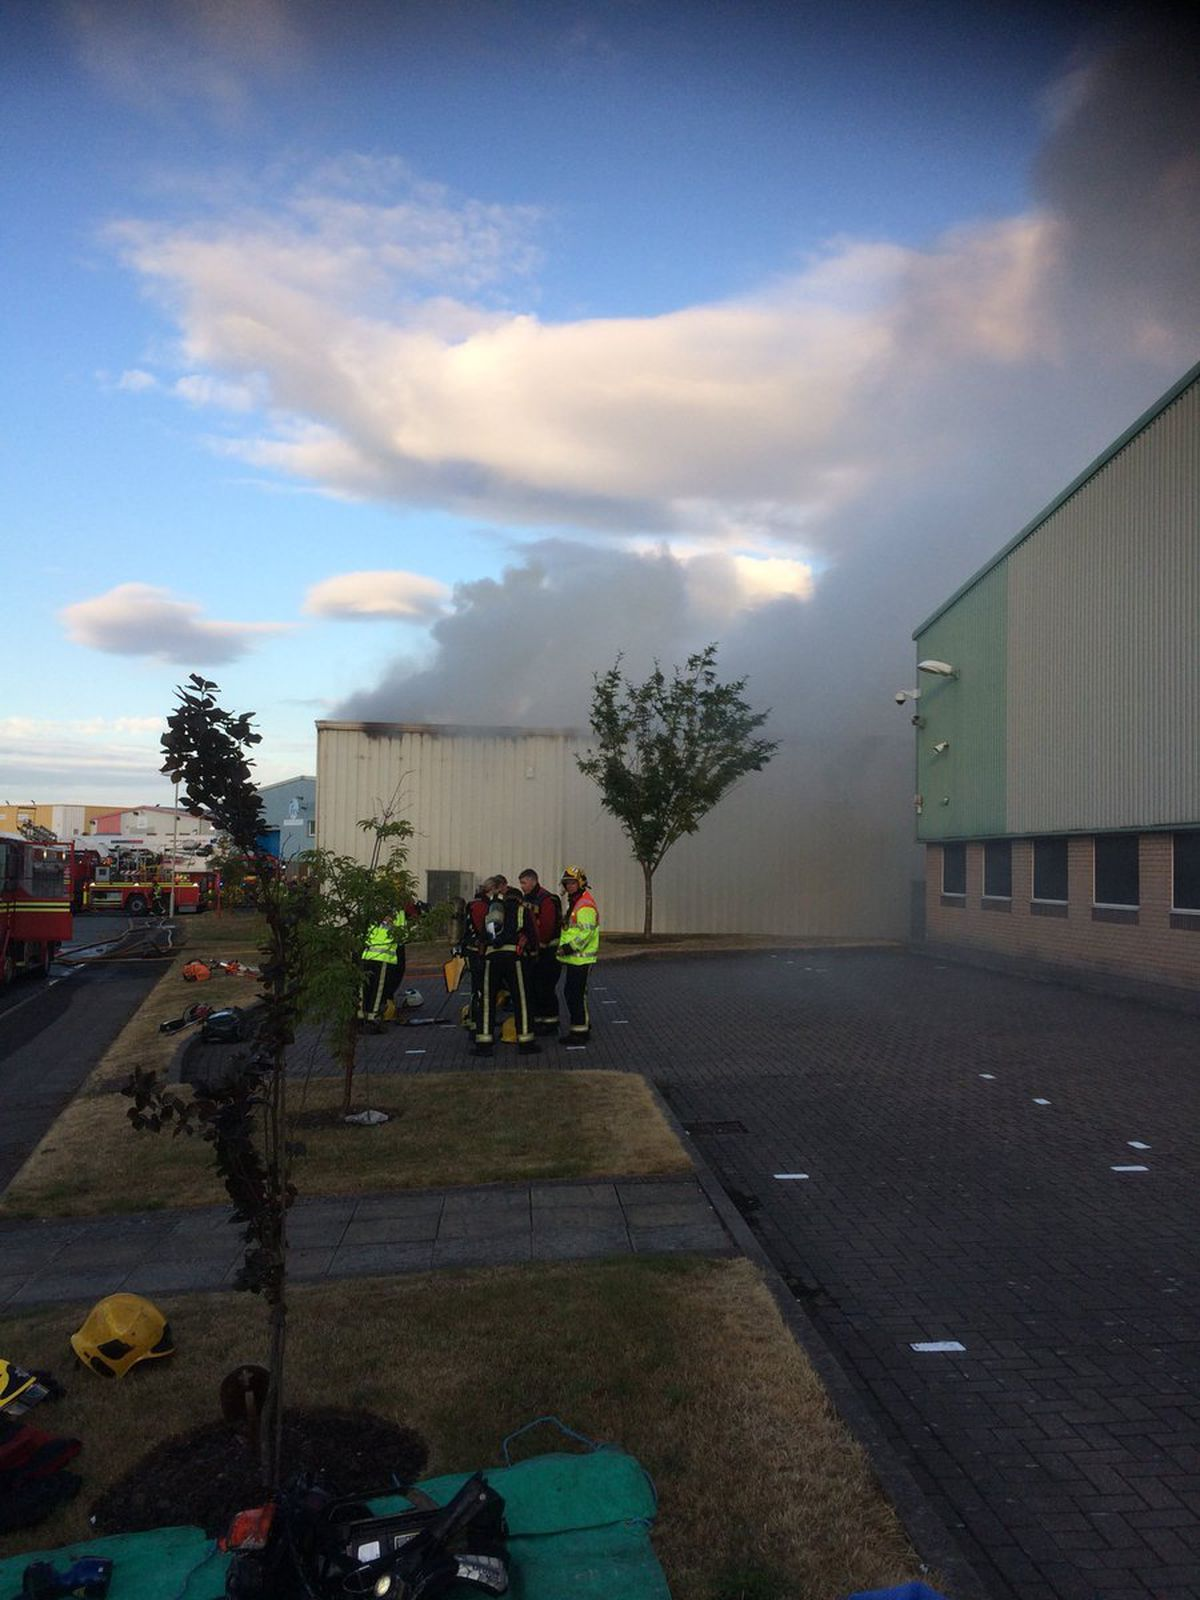 Smoke rising from the building. Picture: Woodgate Valley Fire Station